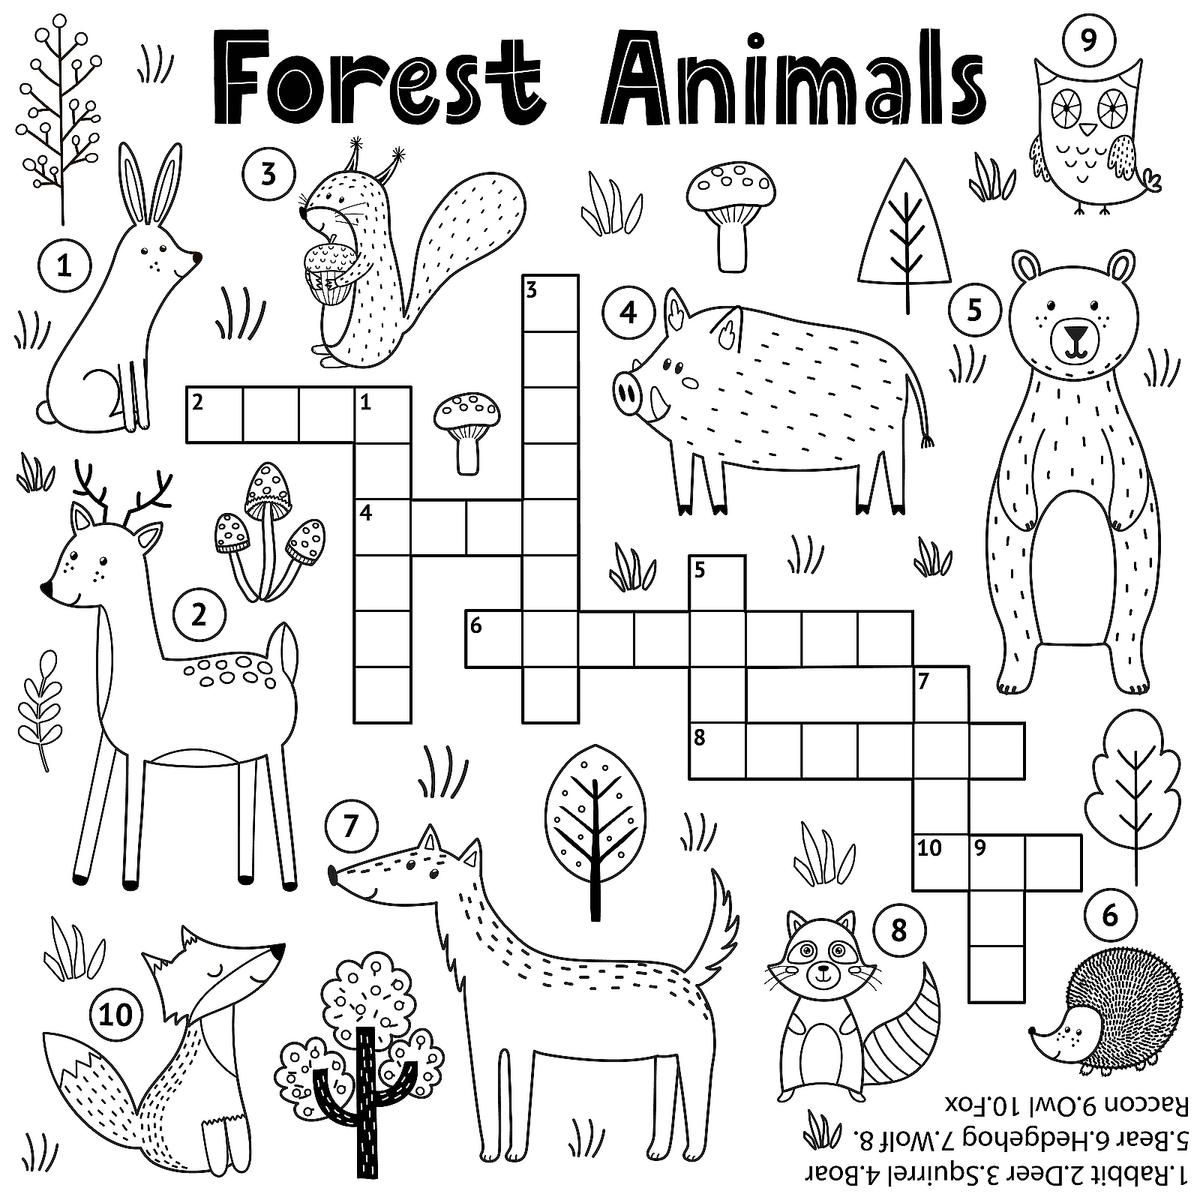 Crossword Puzzles For Kids Fun Free Printable Crossword Puzzle Coloring Page Activities For Children Printables 30seconds Mom Printable Puzzles For Kids Free Printable Crossword Puzzles Printable Crossword Puzzles [ 1200 x 1200 Pixel ]